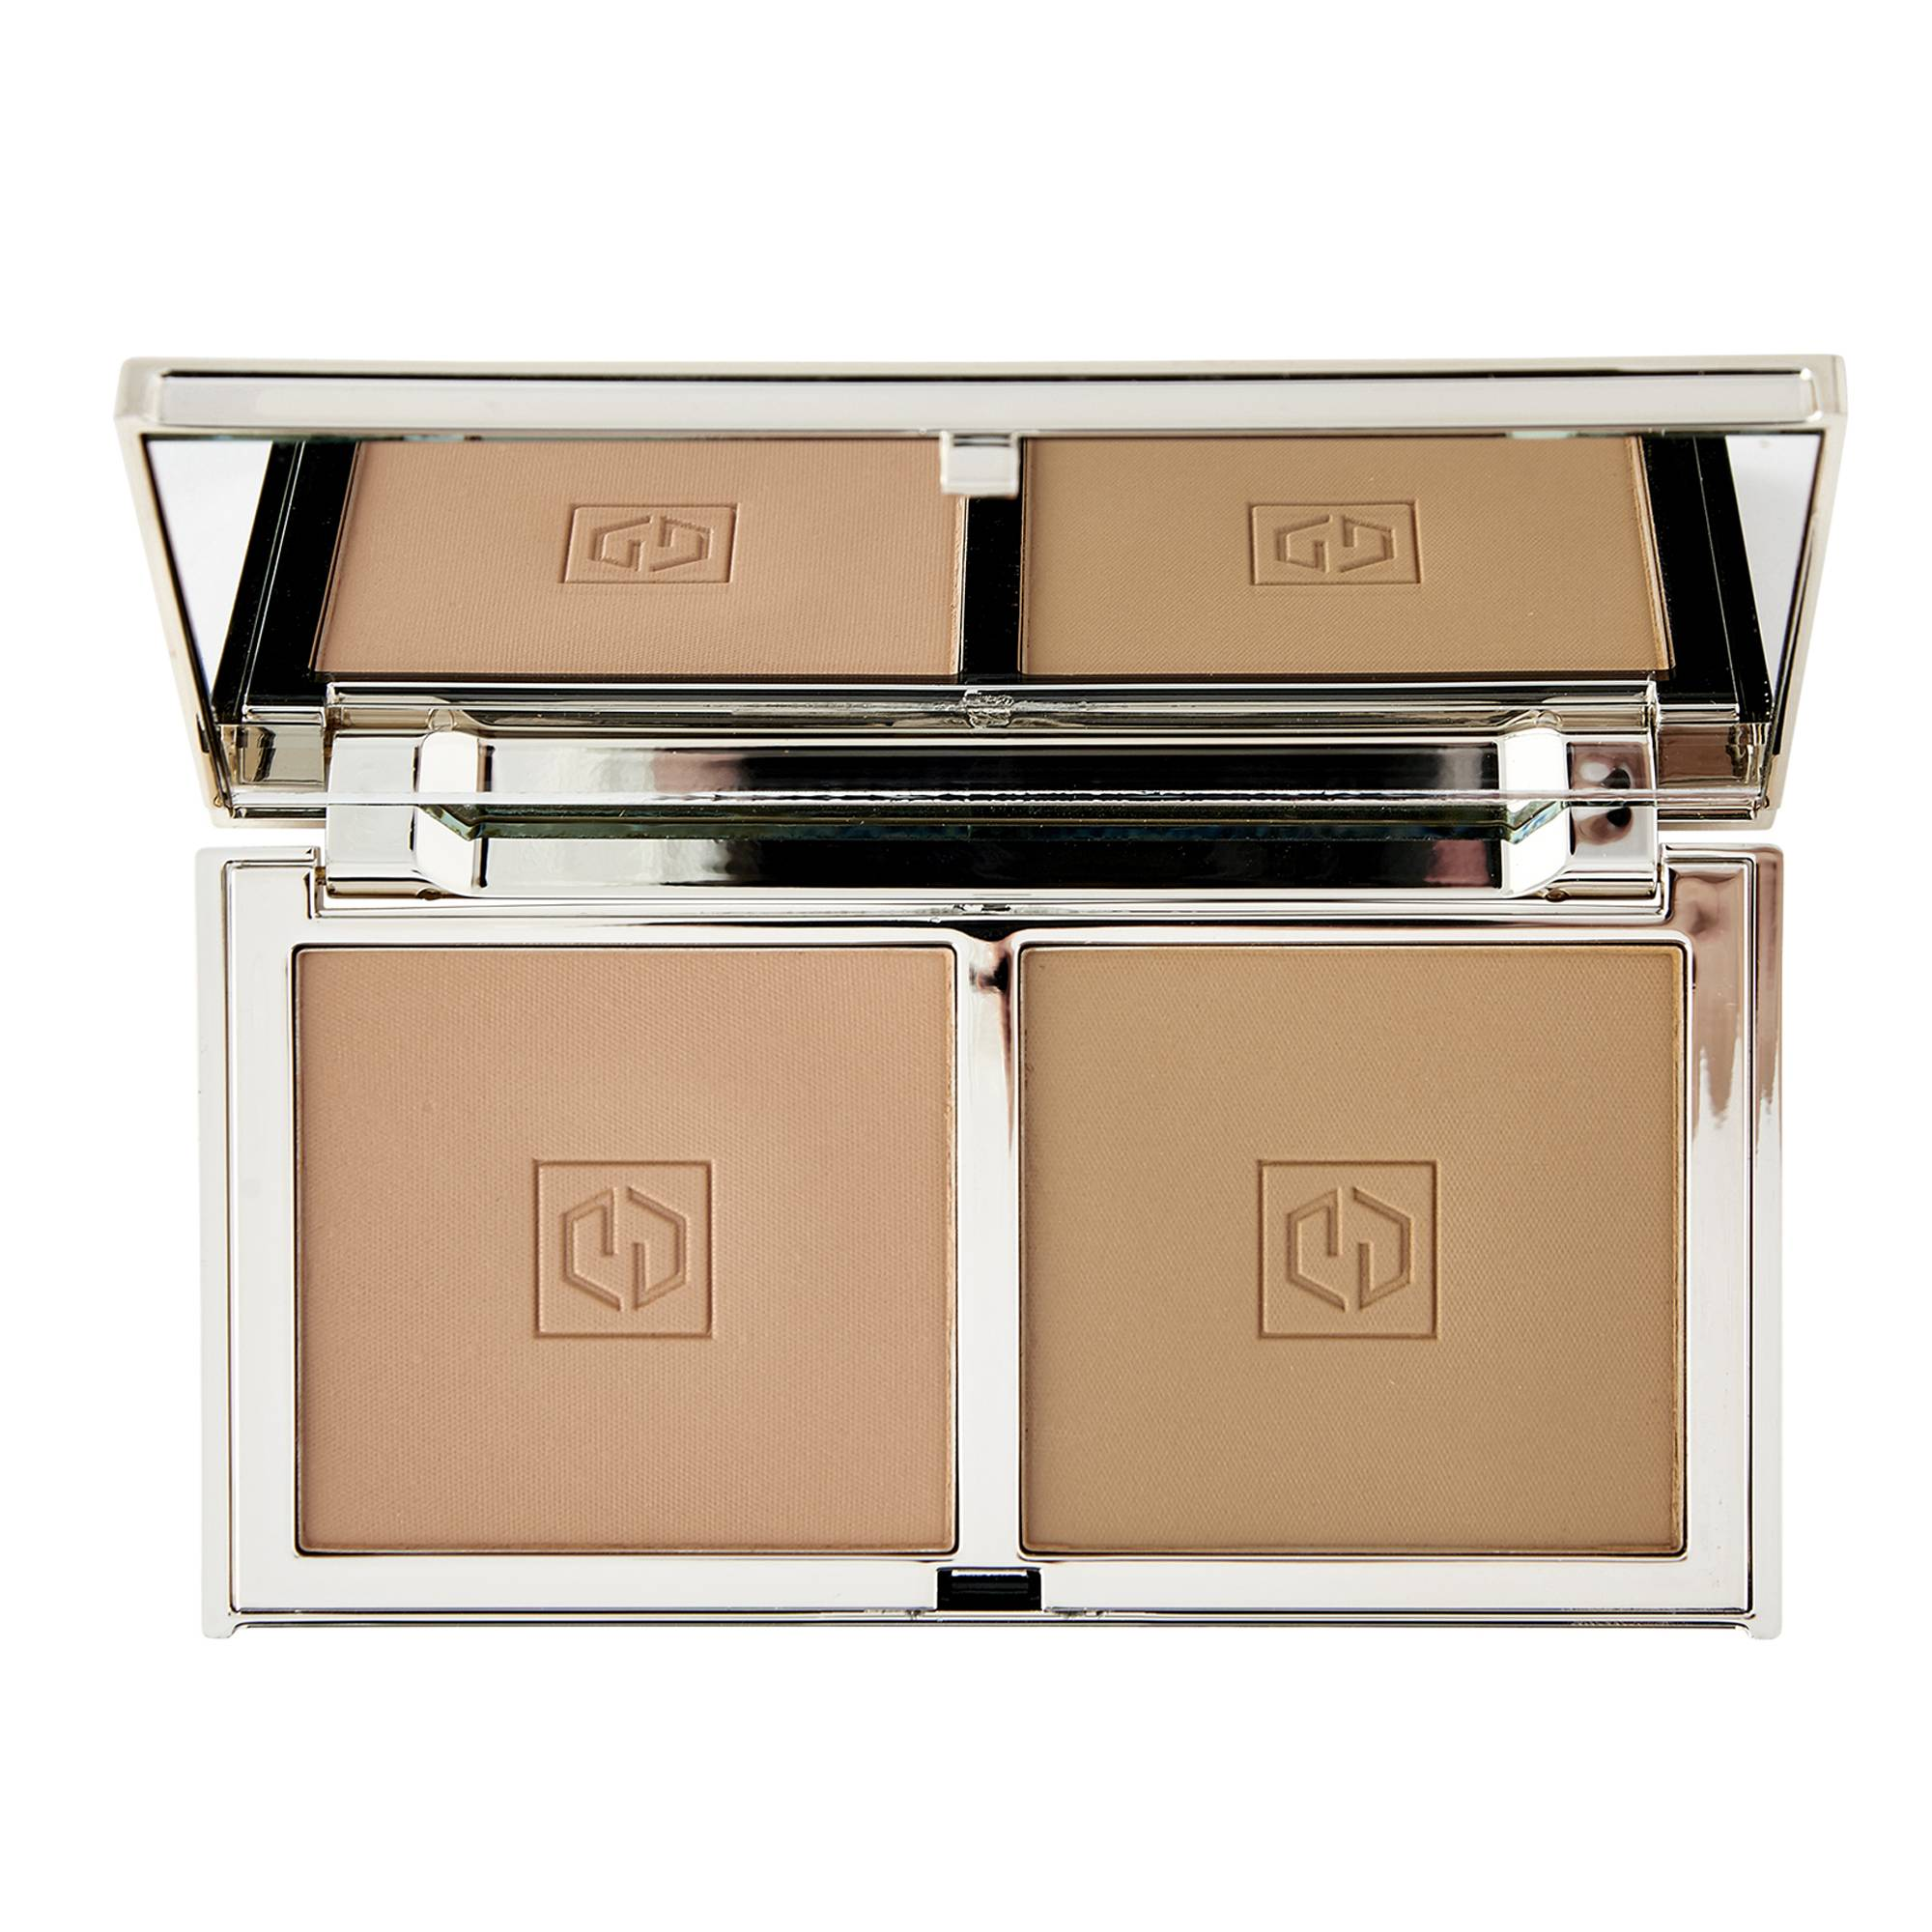 Jouer Cosmetics Sunswept Bronzer Duo Sunkissed 11g